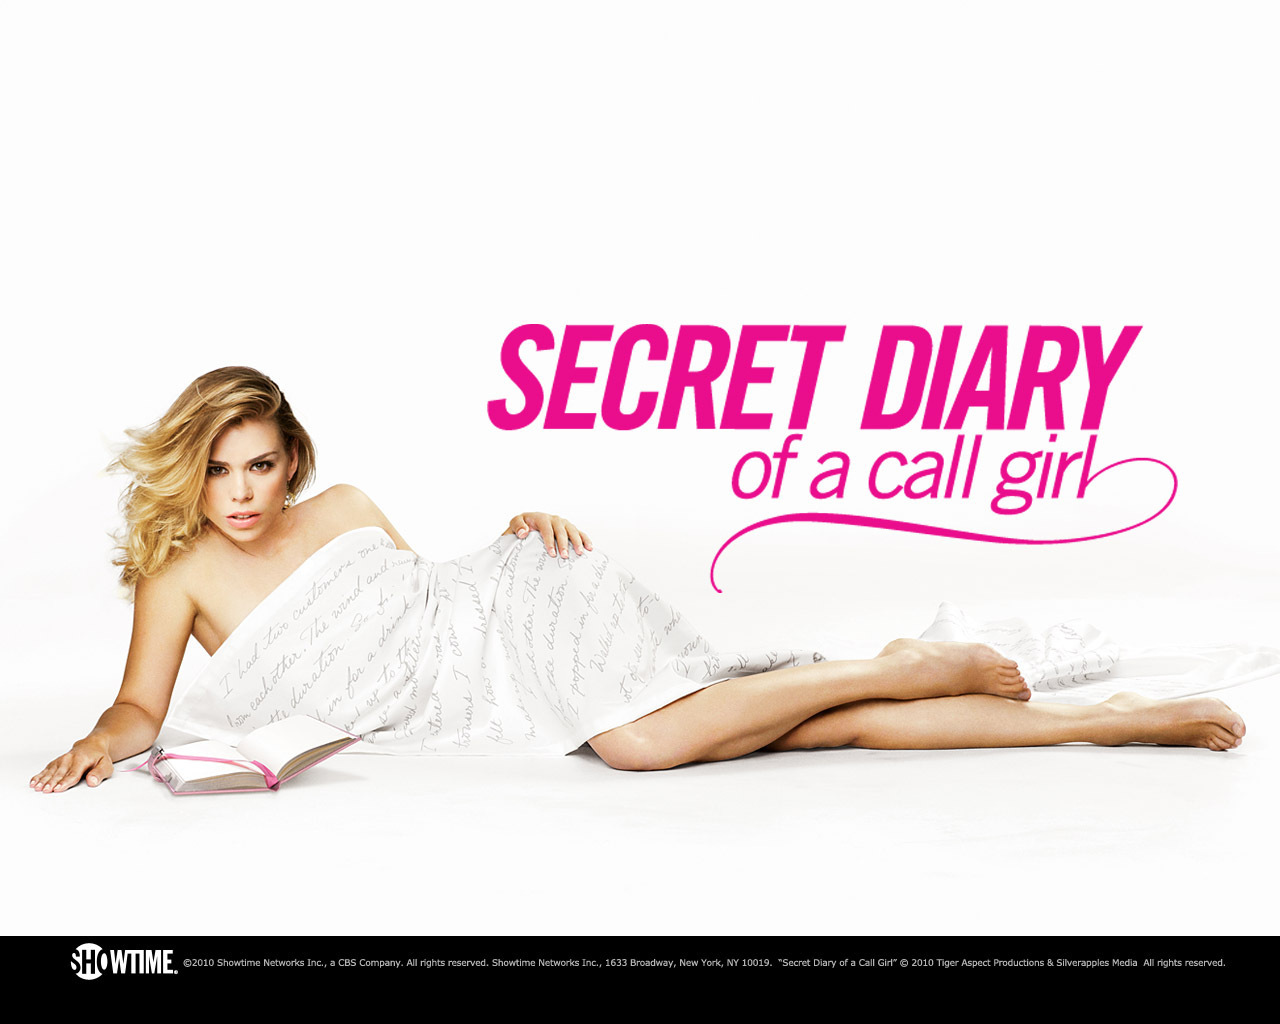 The secret diary of a call girl season 4